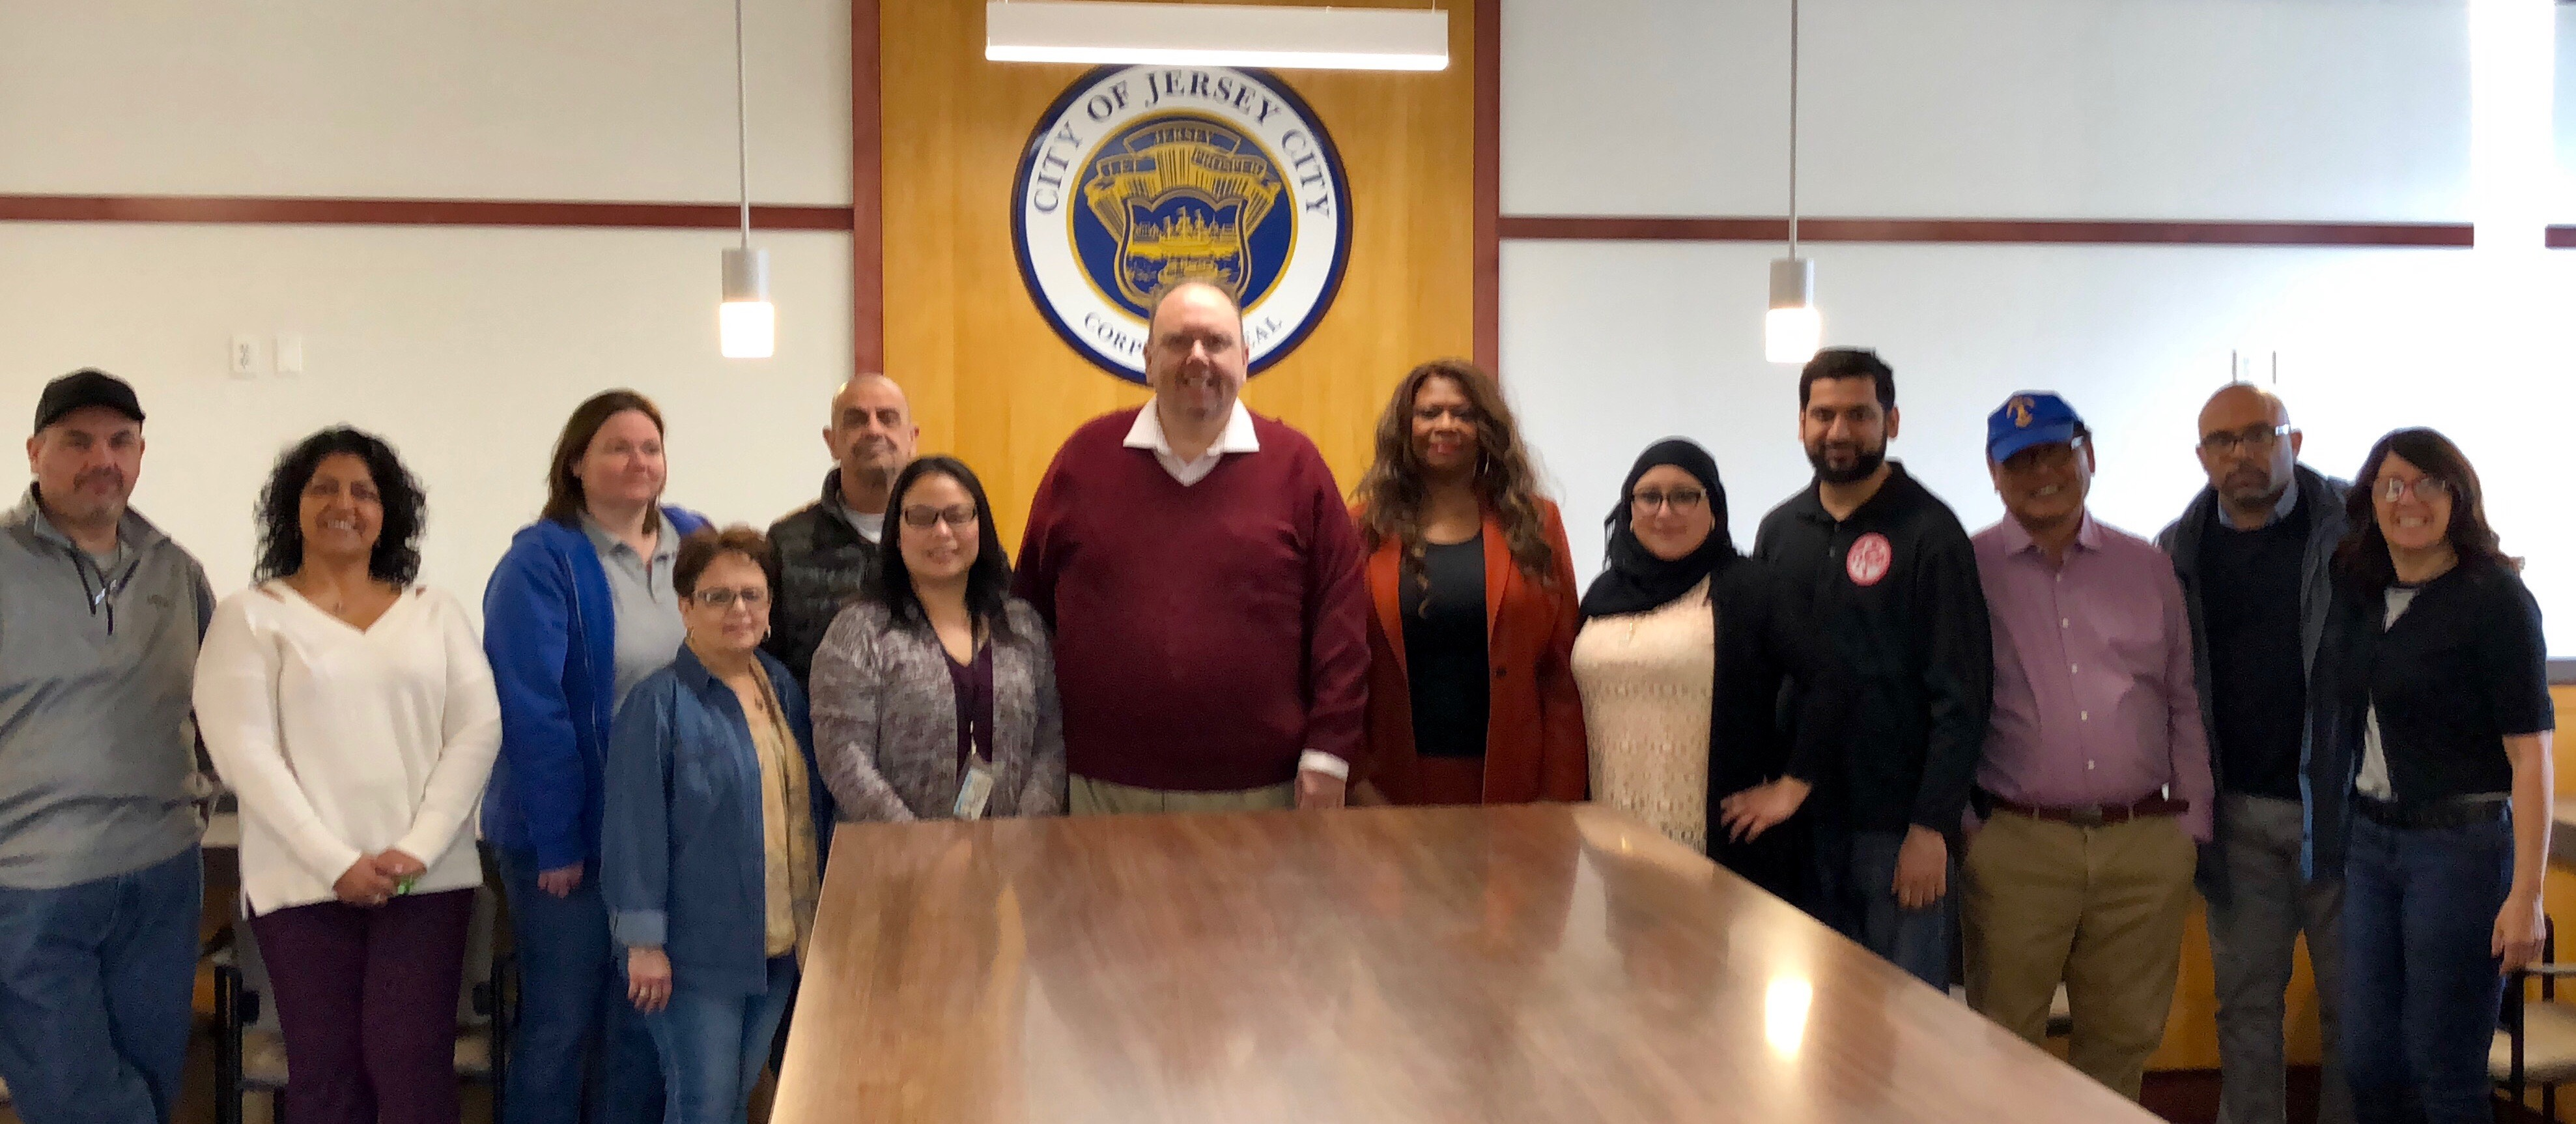 Division Director Boor and staff members